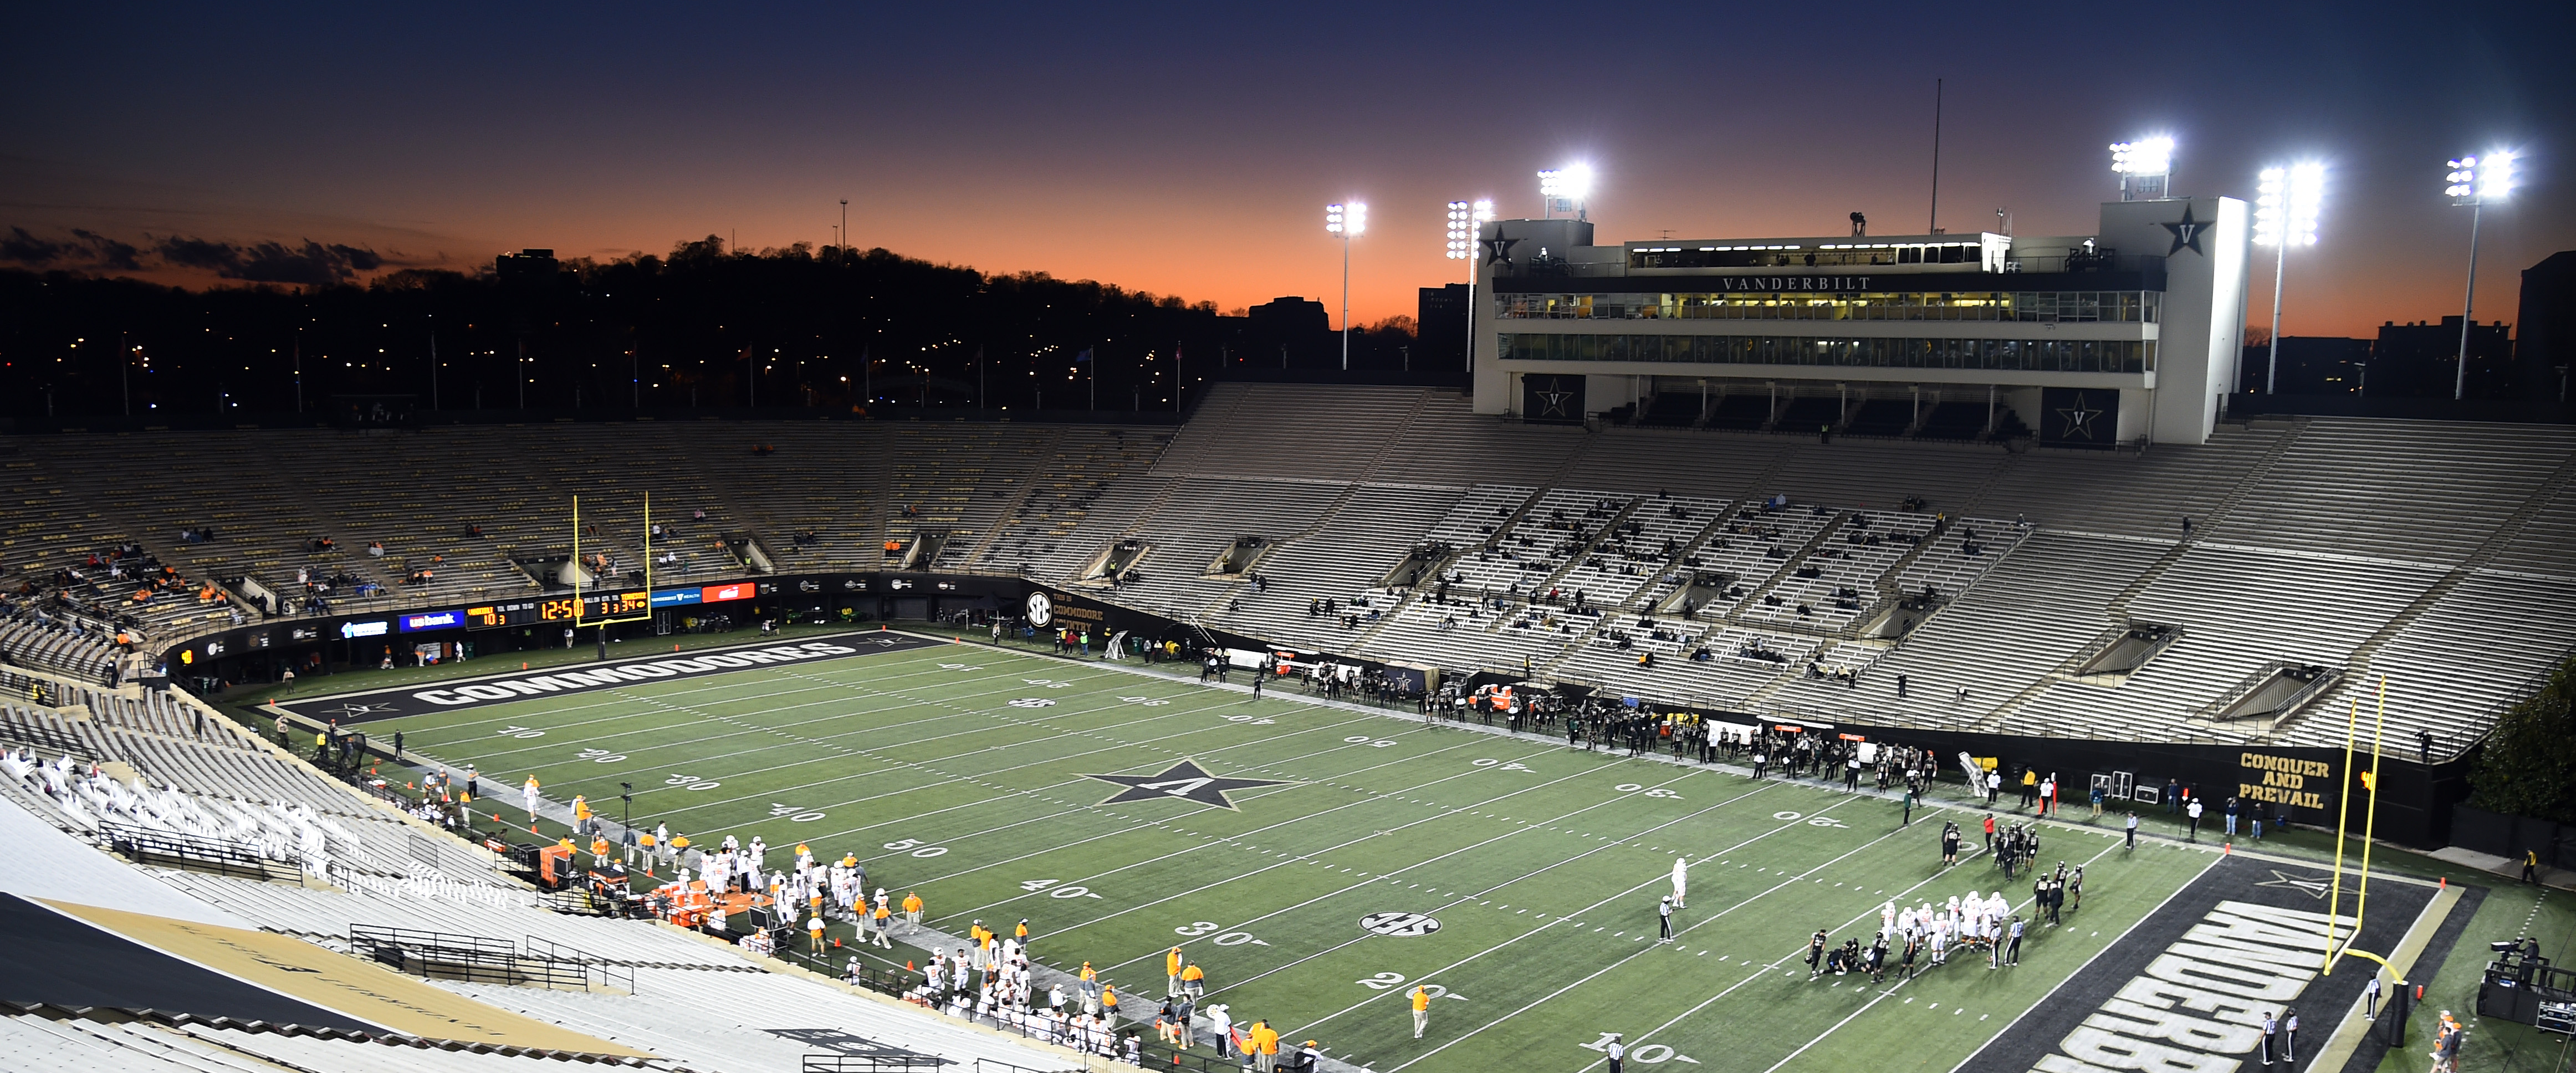 Vanderbilt is finally ready to invest in its athletics